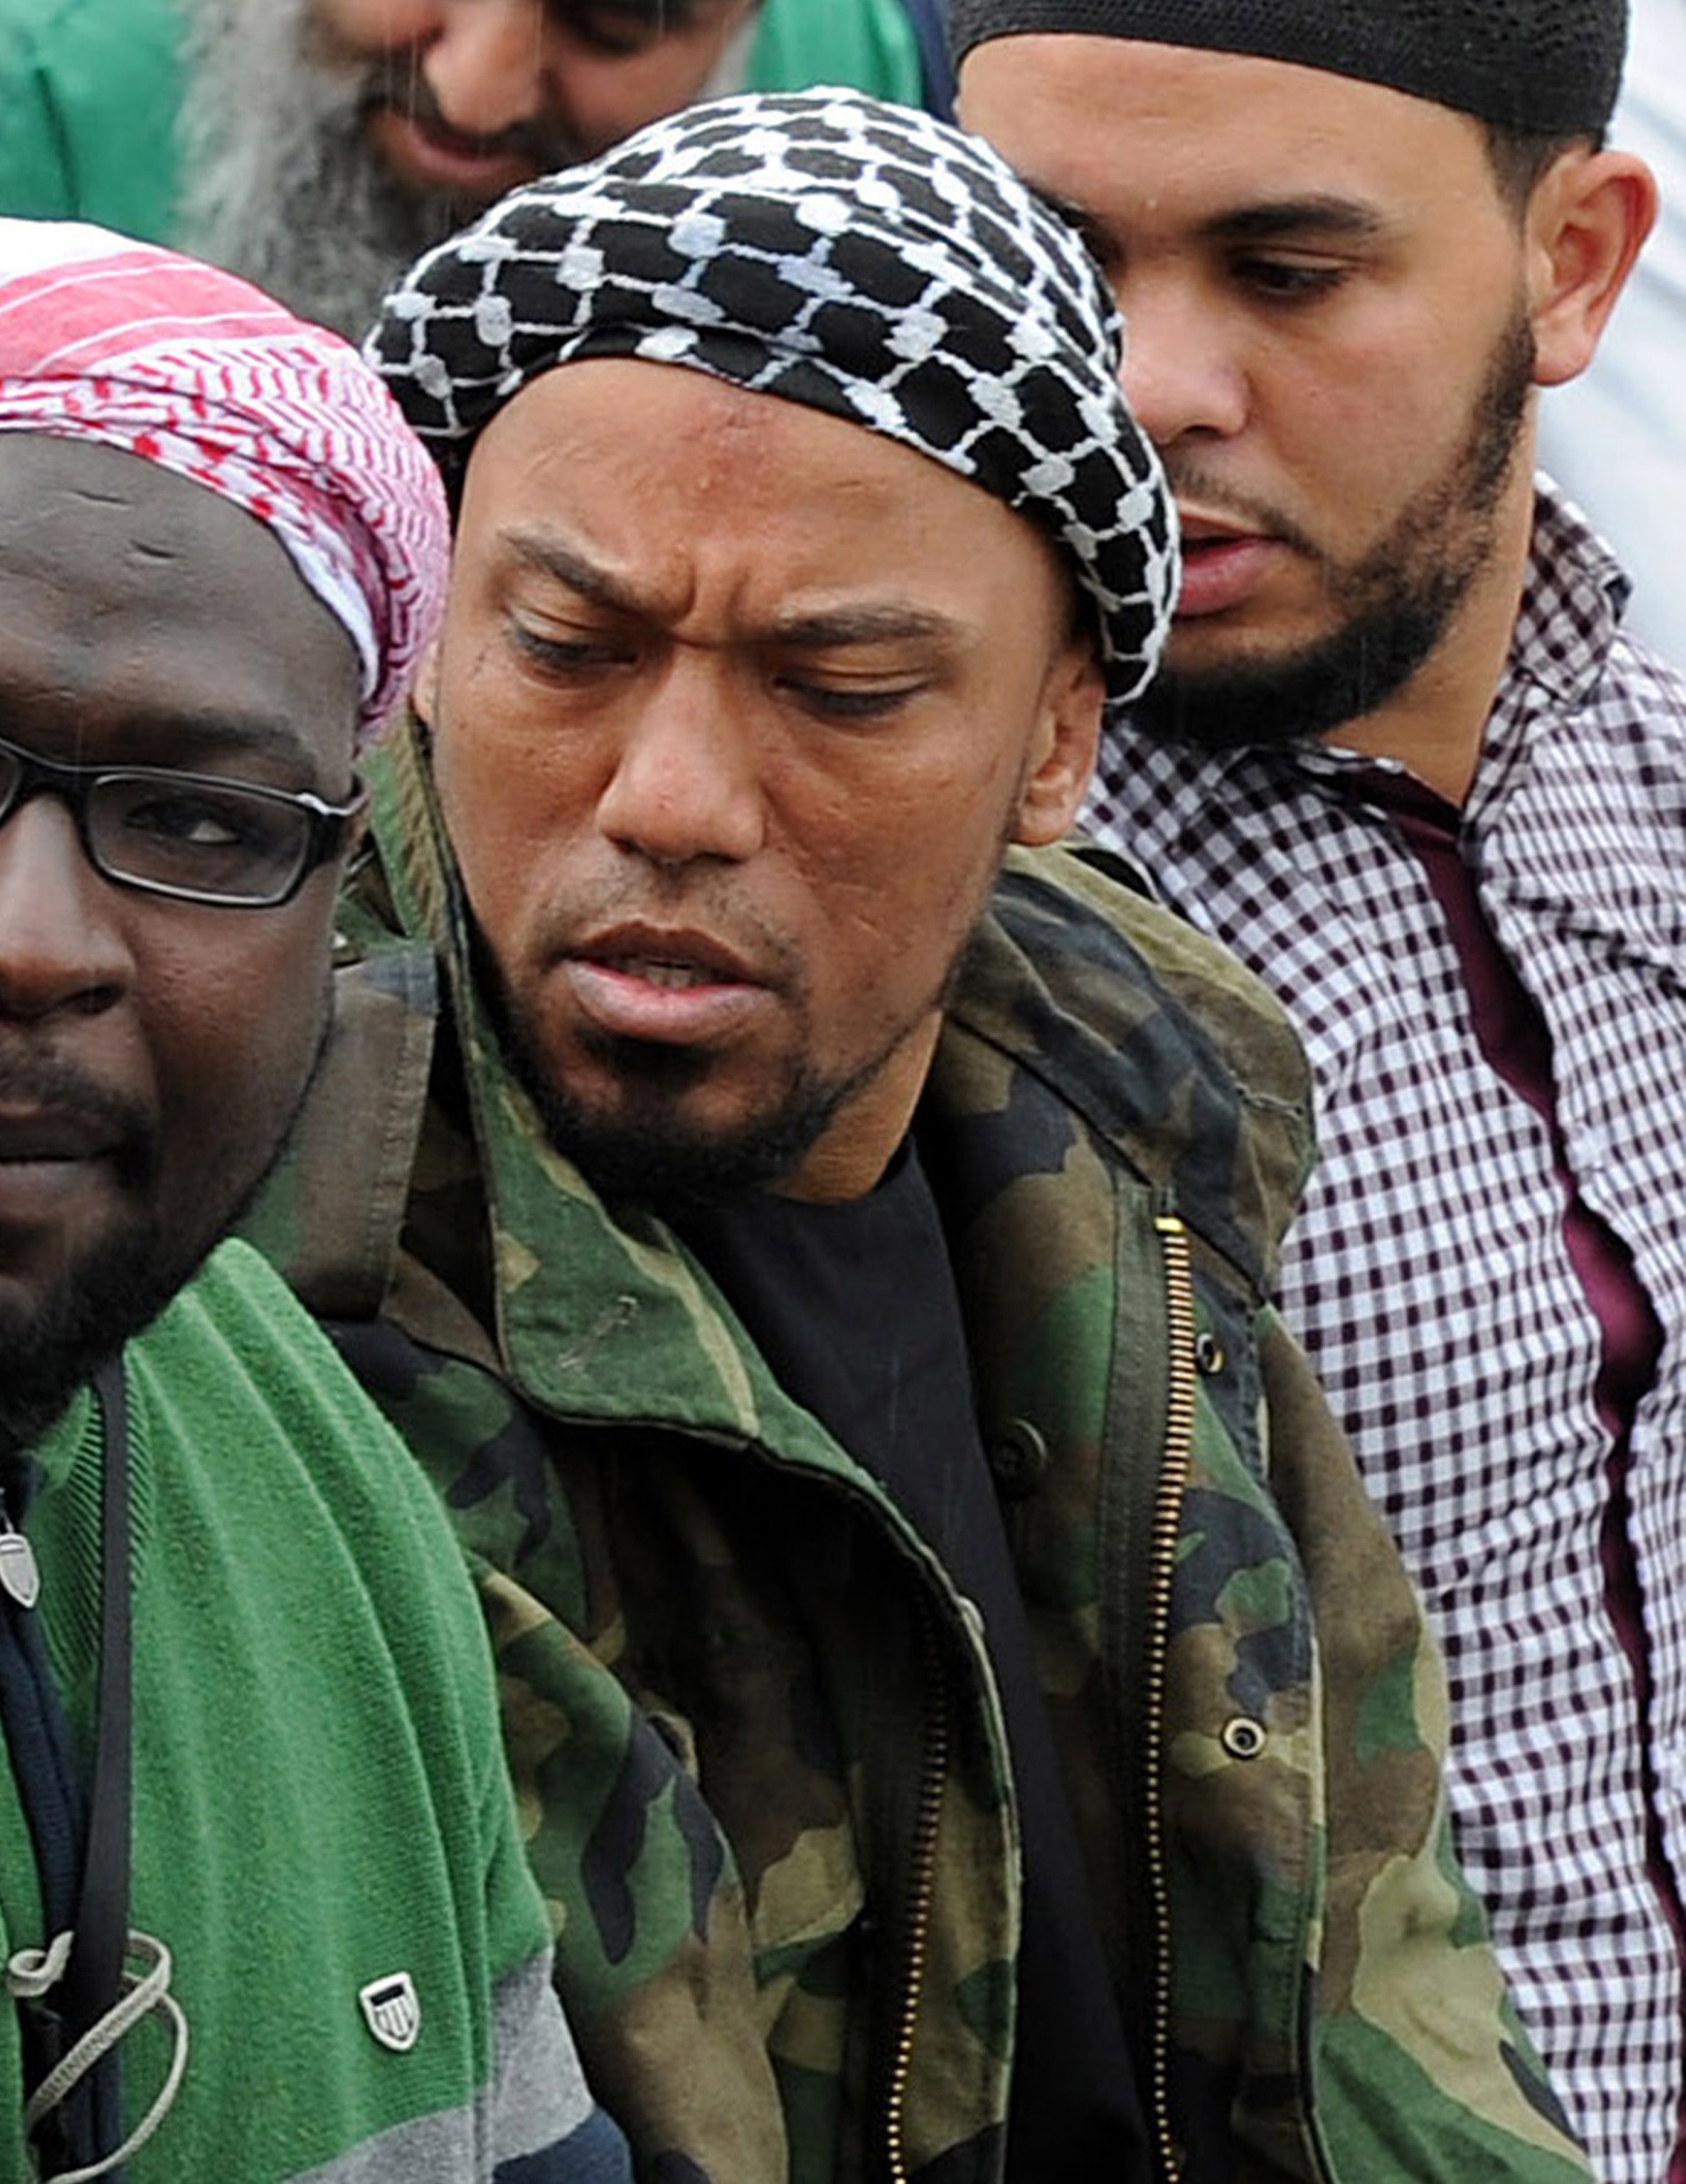 Picture taken on May 5, 2012, shows former German rapper Denis Cuspert, center, among Salafis in Bonn, Germany